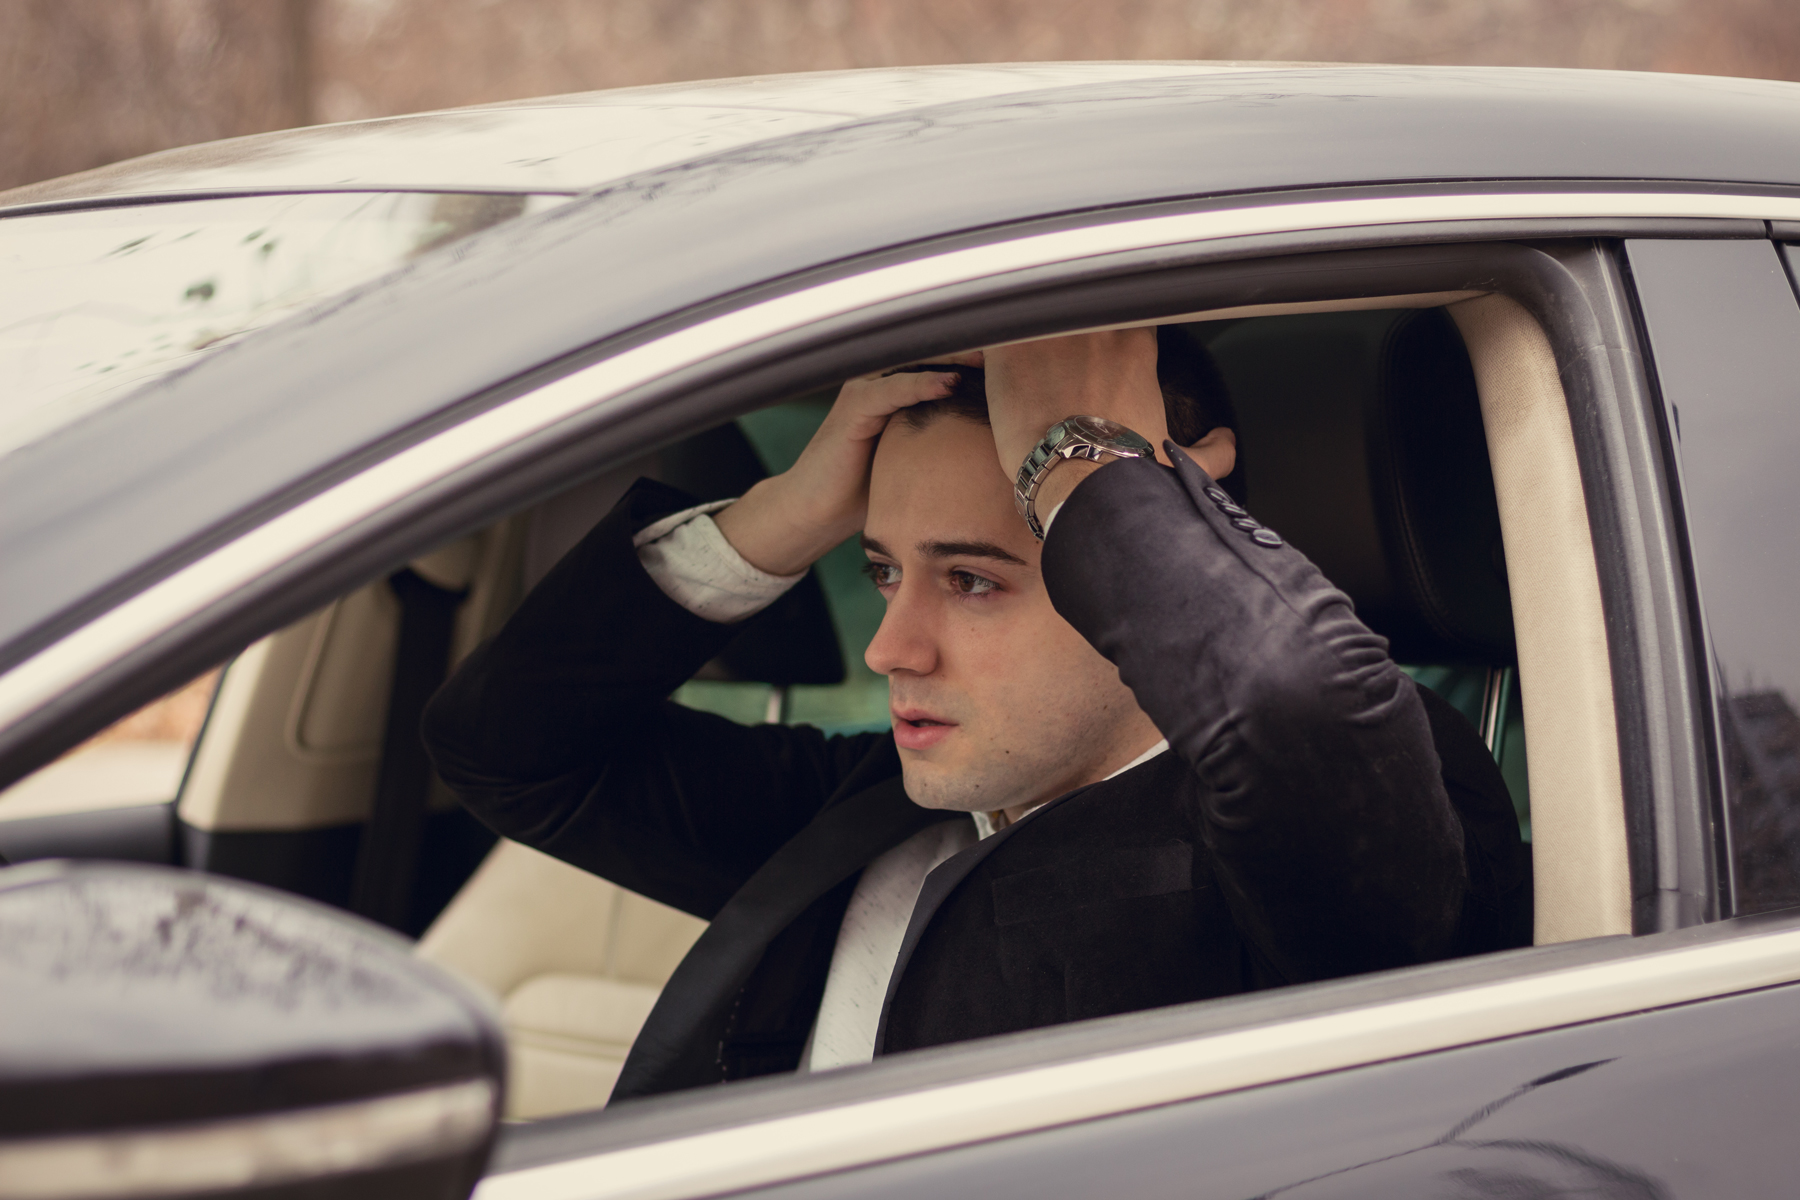 A man sitting in his car with his hands on his head after getting caught without car insurance